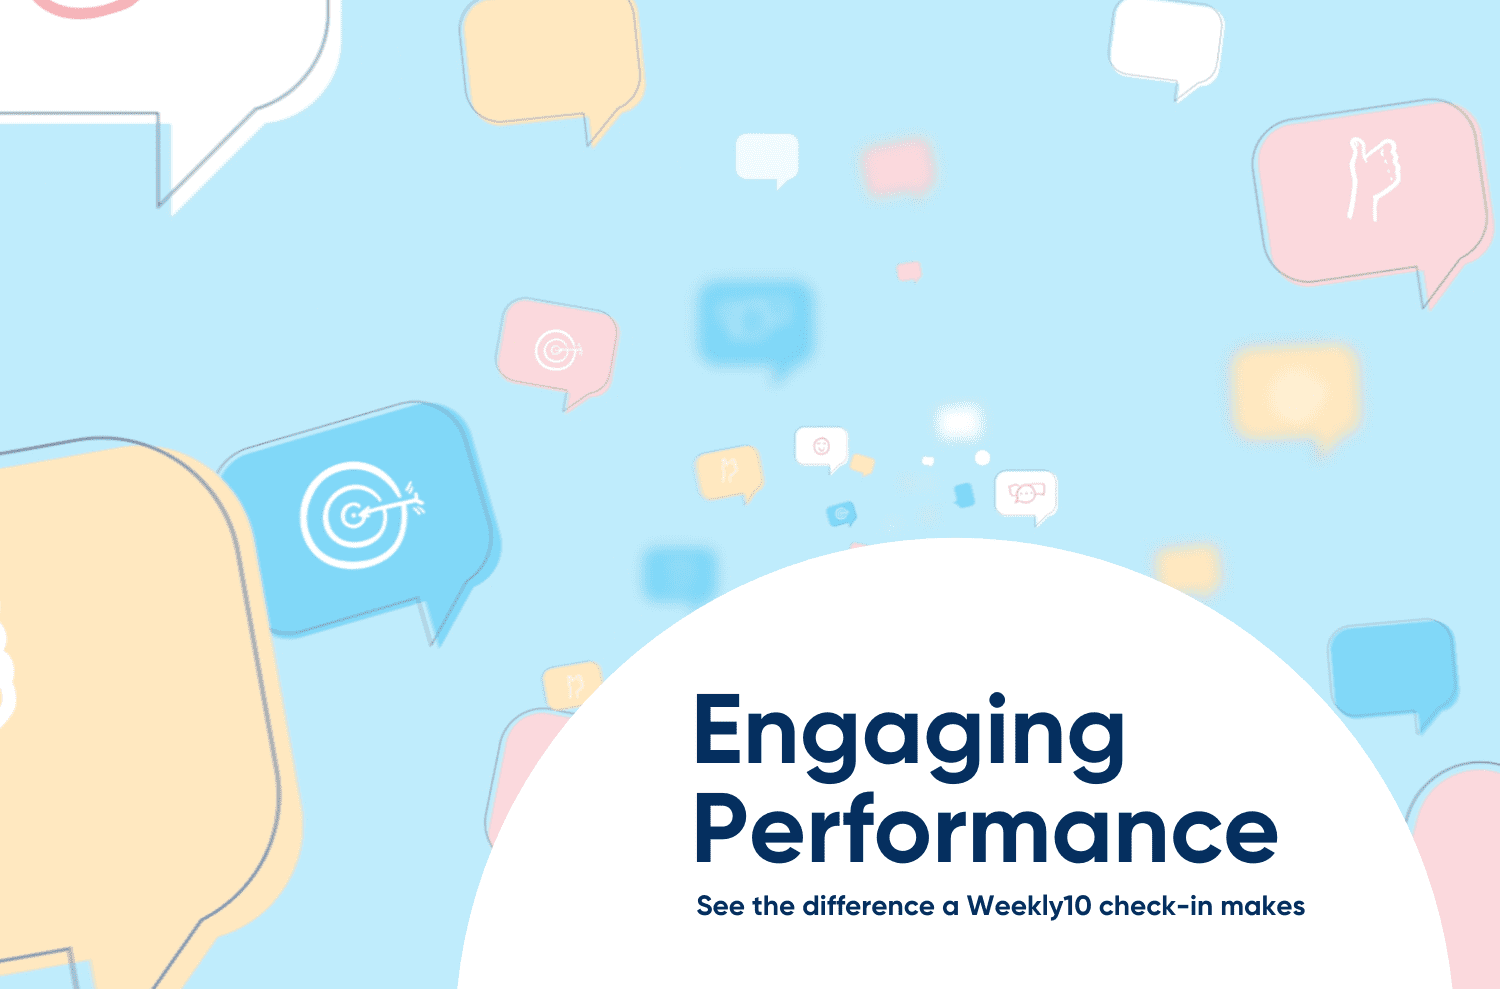 Engaging performance with Weekly10